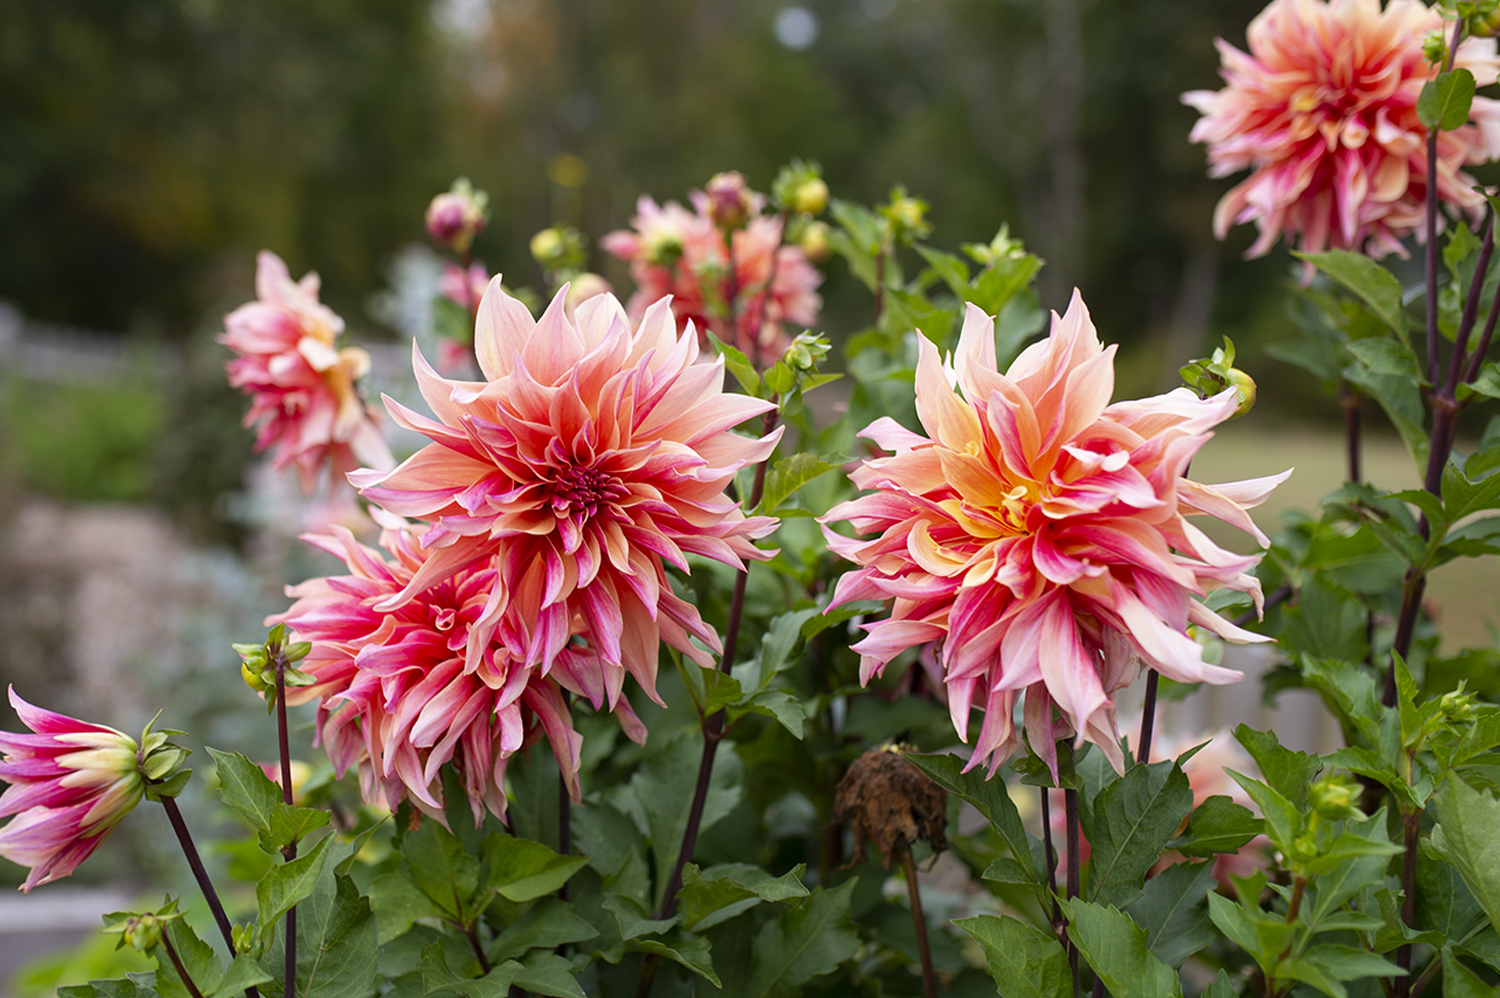 Dahlias: Growing Dazzling Dahlias | Kelly Orzel